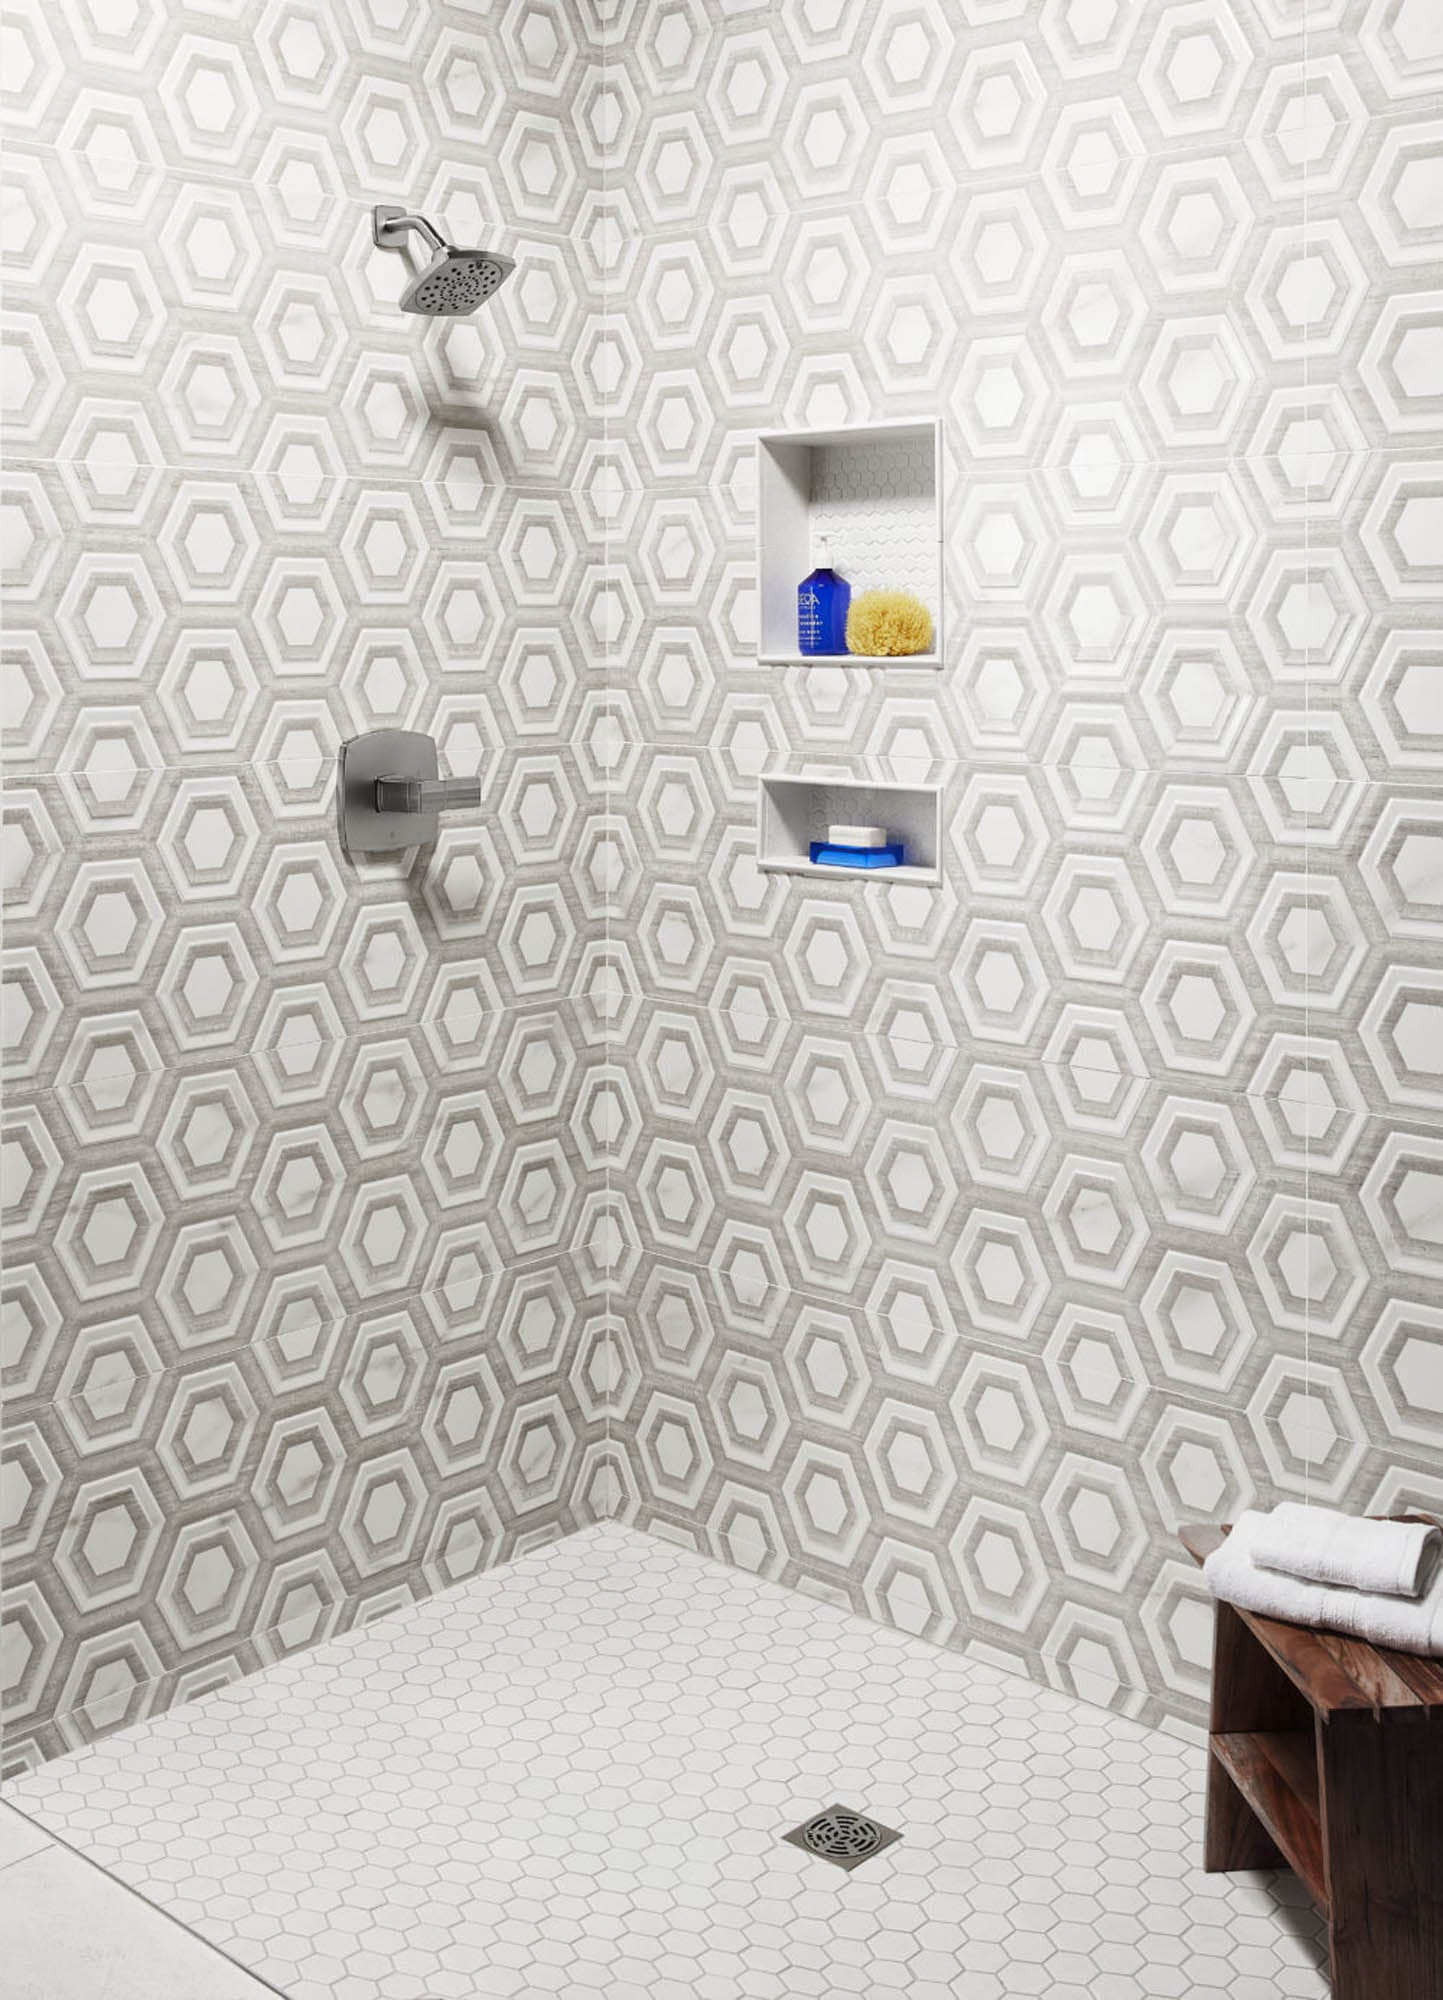 Hexagon shower wall and floor tile